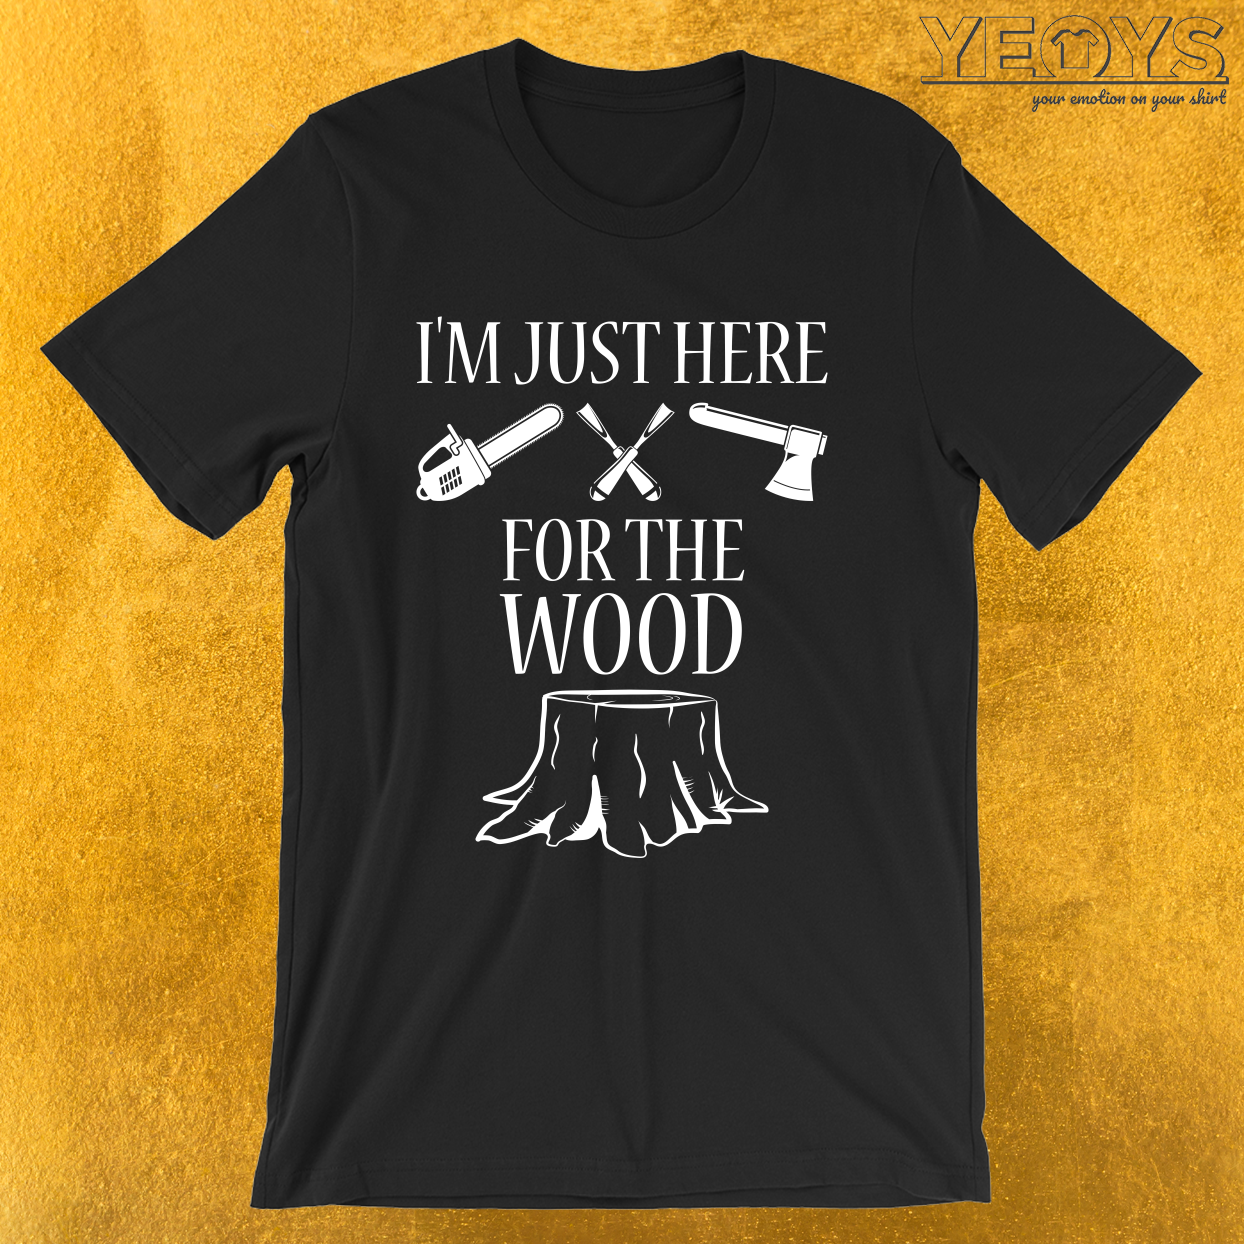 I'm Just Here For The Wood – Woodworker Tee